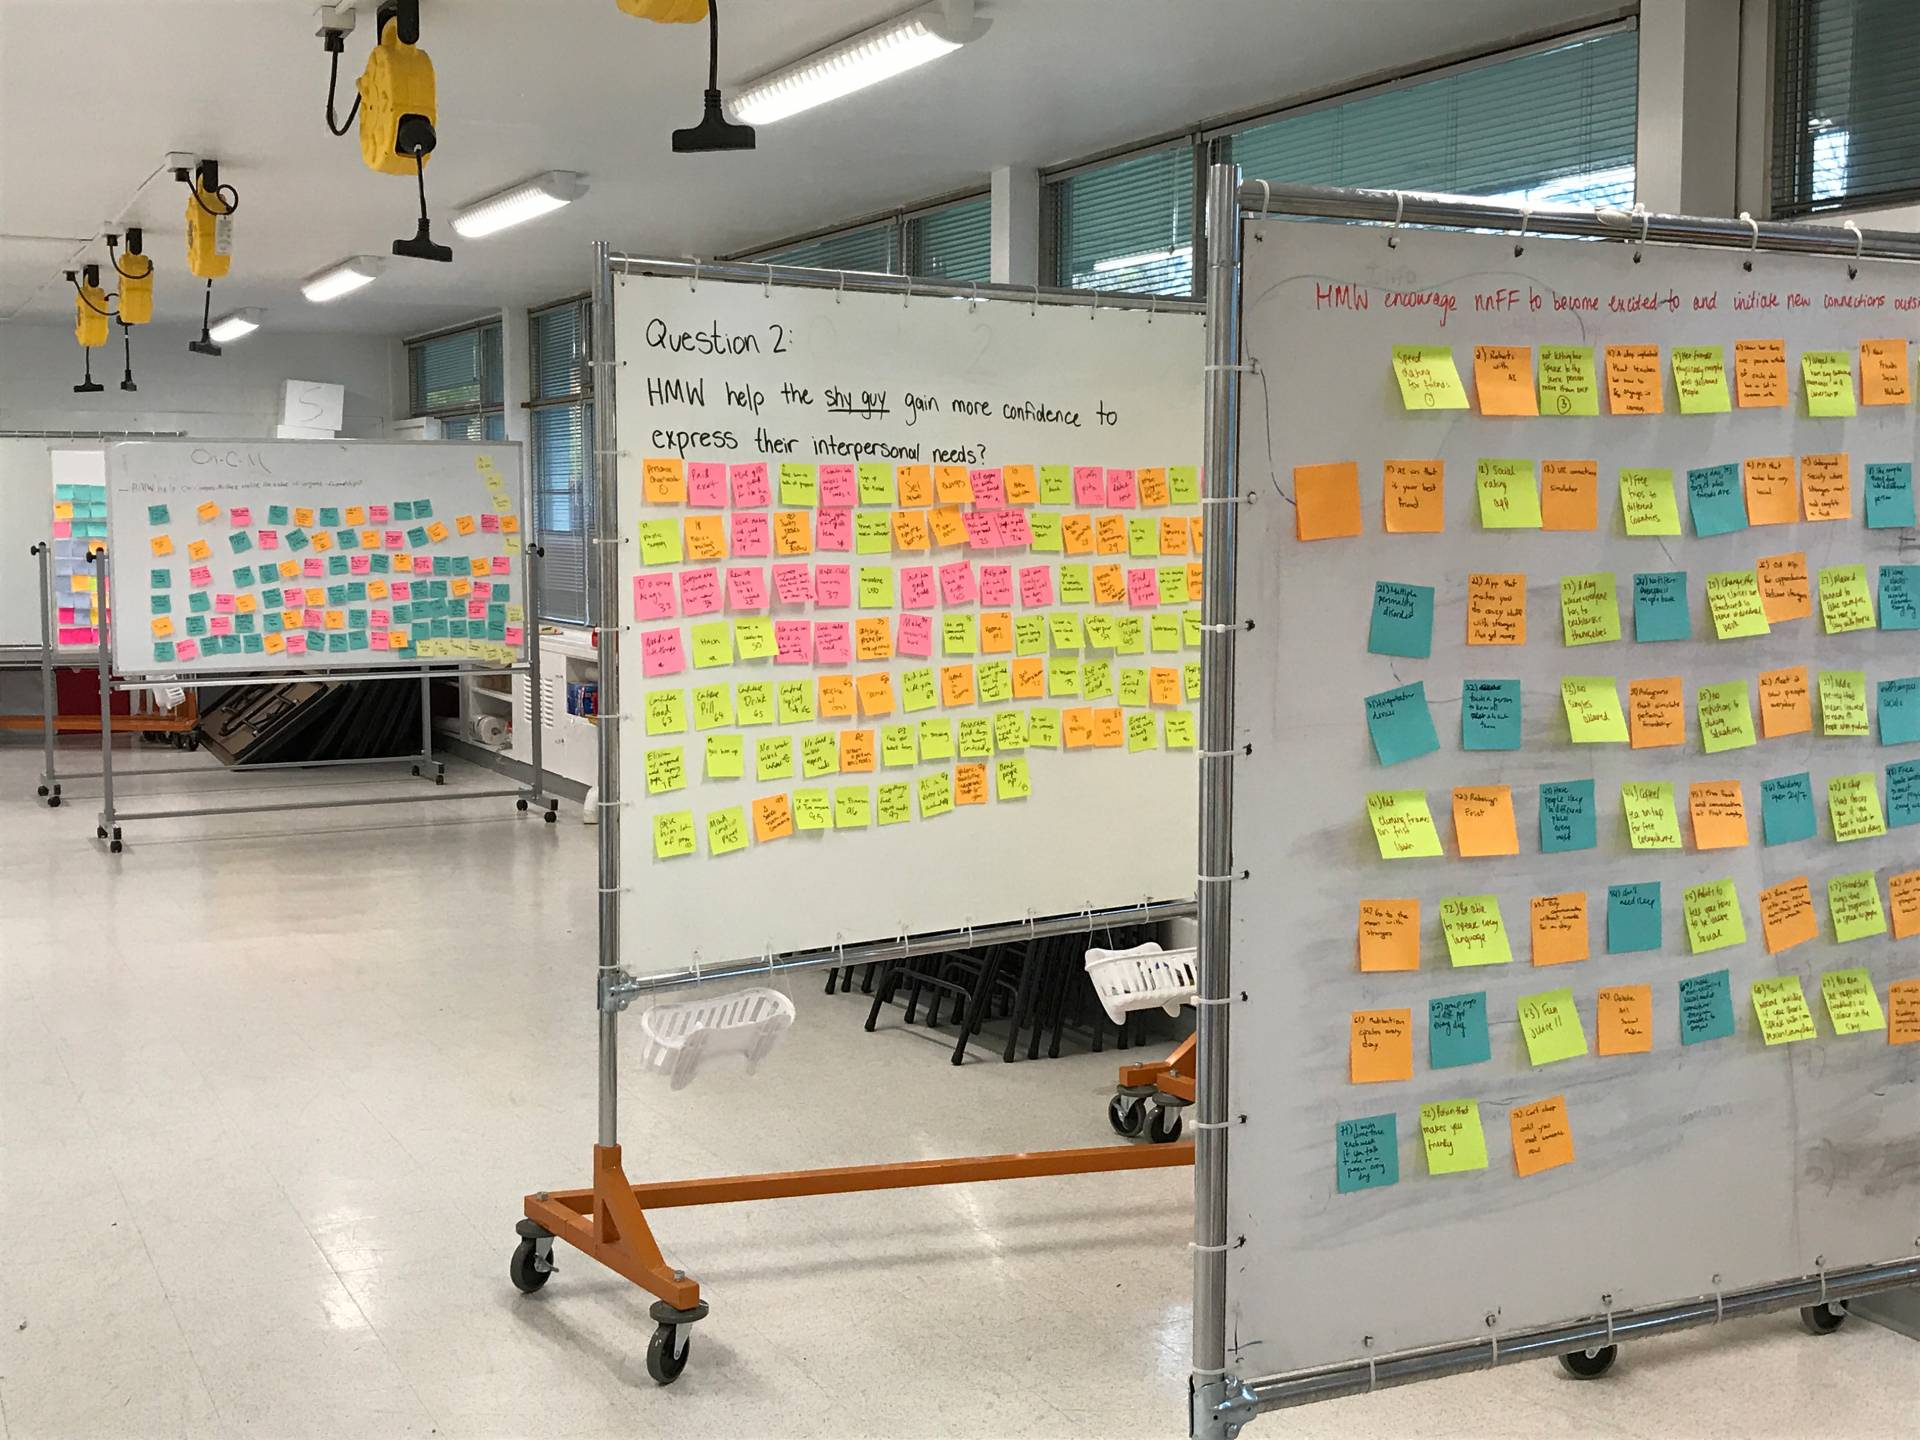 Four whiteboards covered in post-it notes